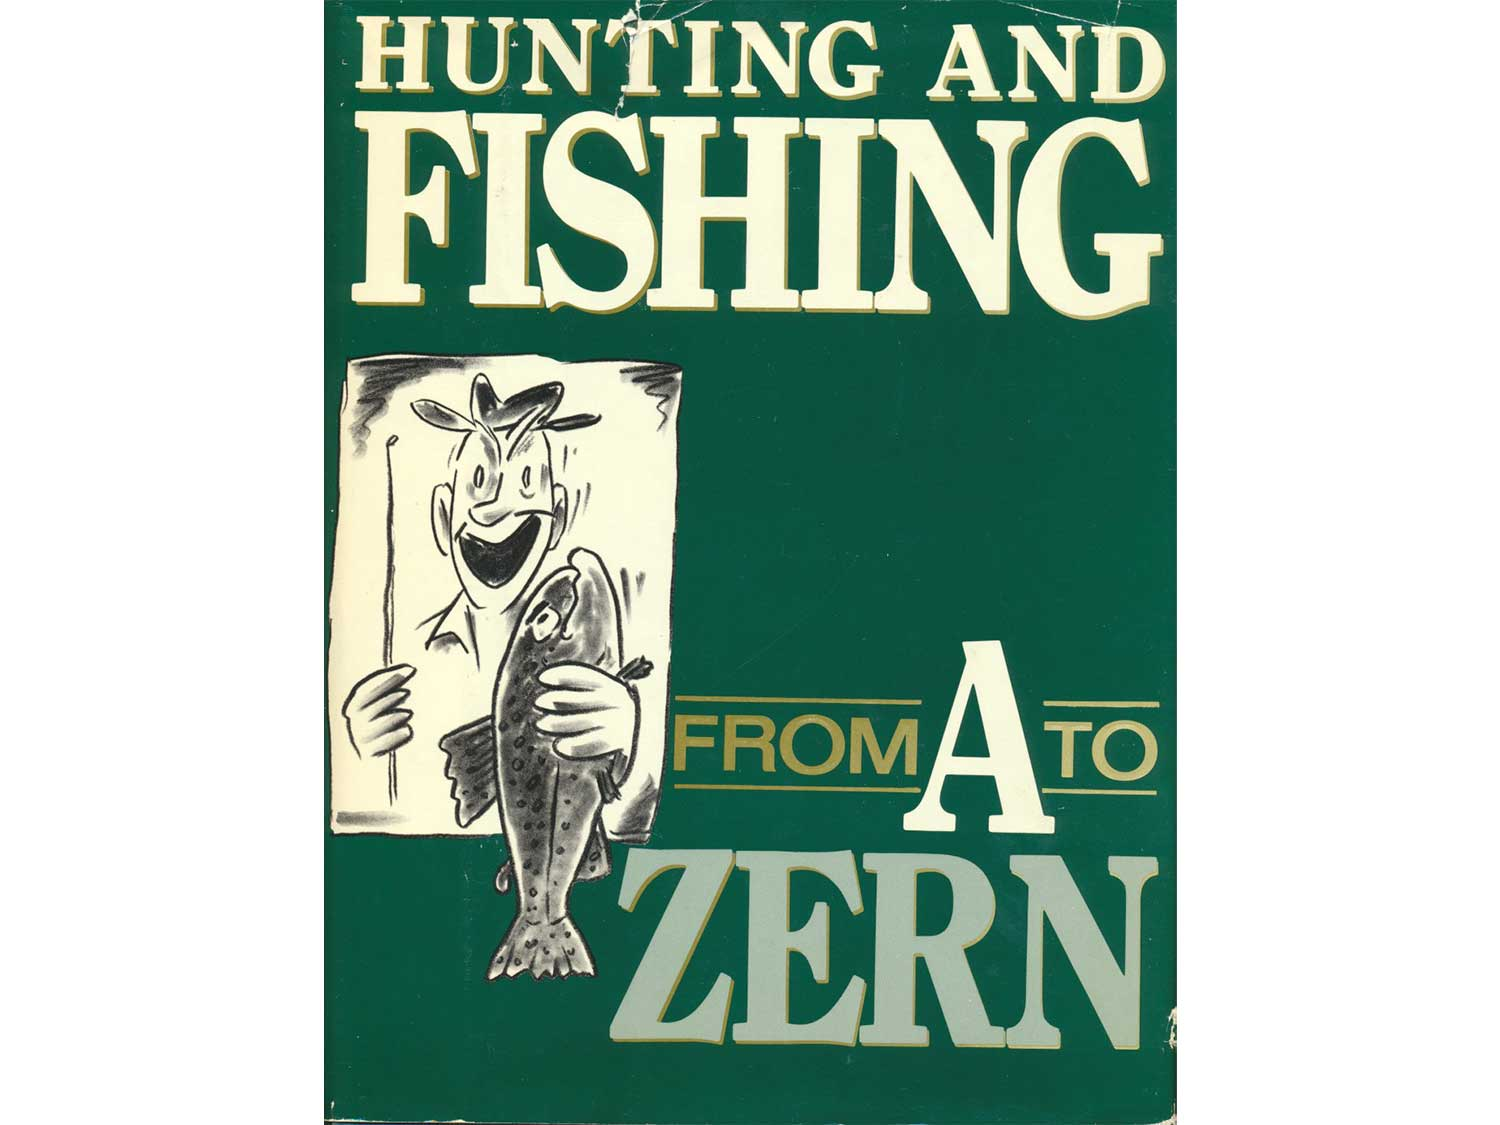 Hunting and Fishing from A to Zern, by Ed Zern